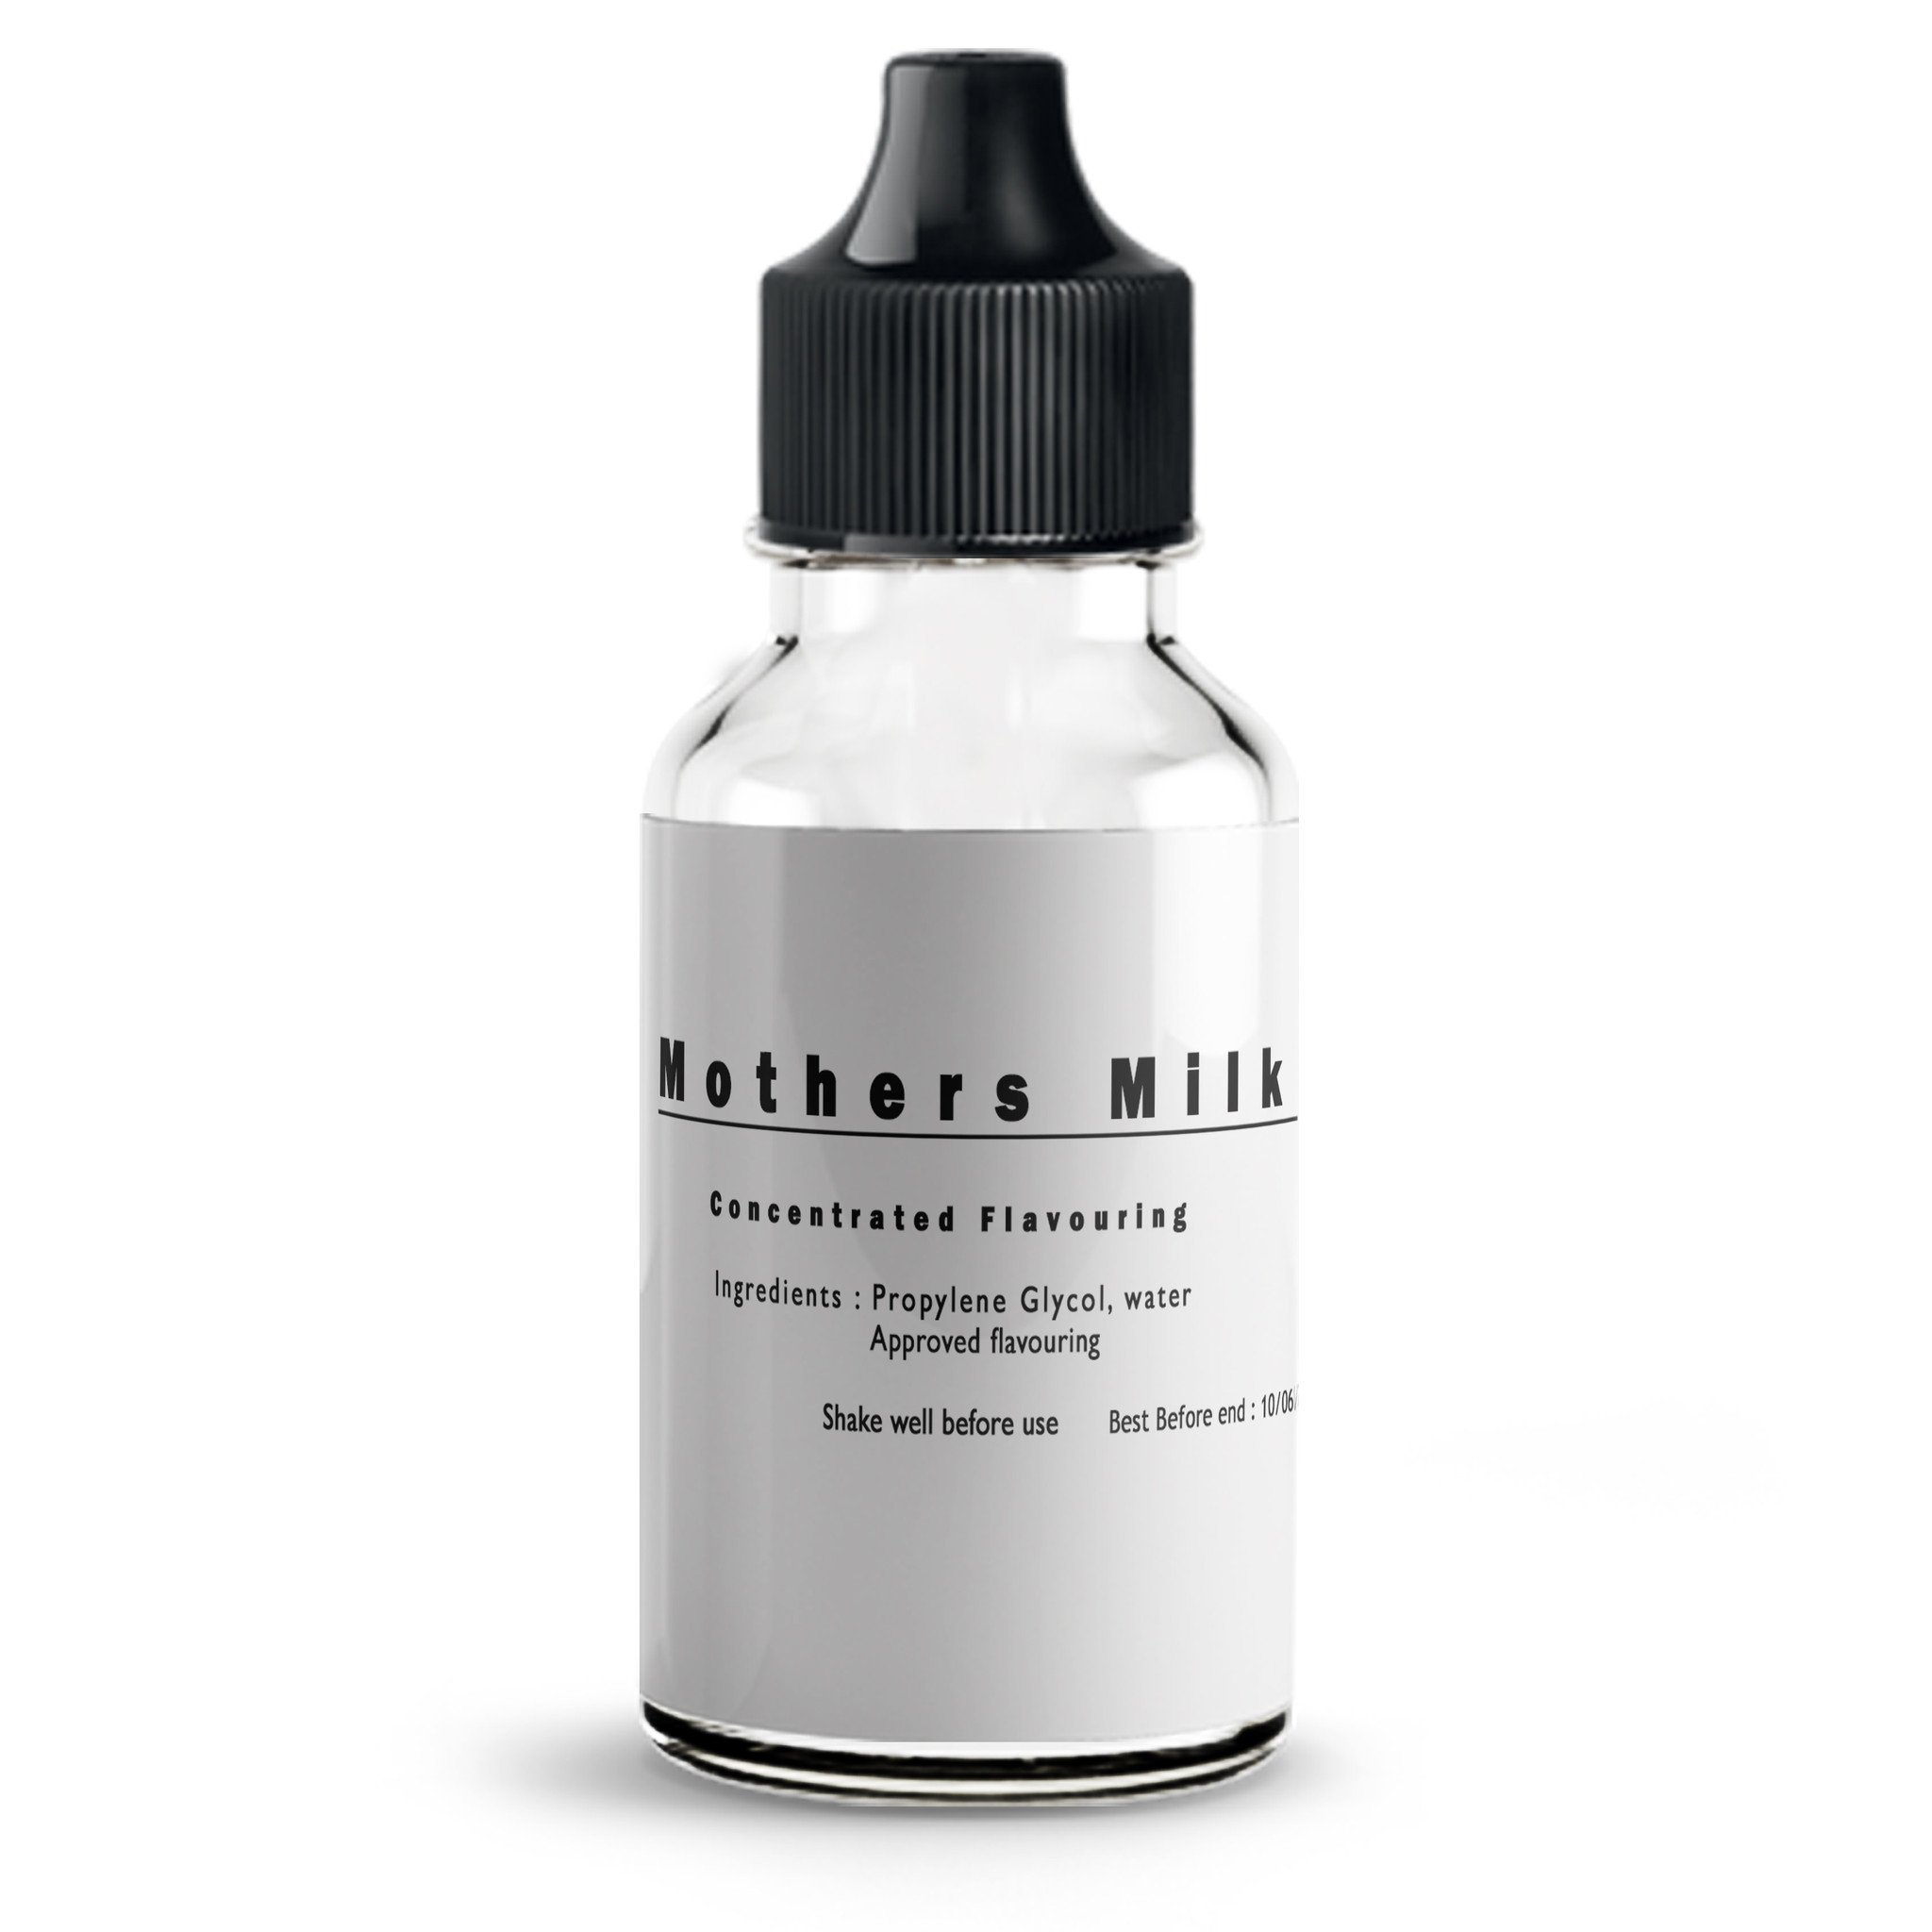 Mothers Milk Flavour concentrate for E liquids